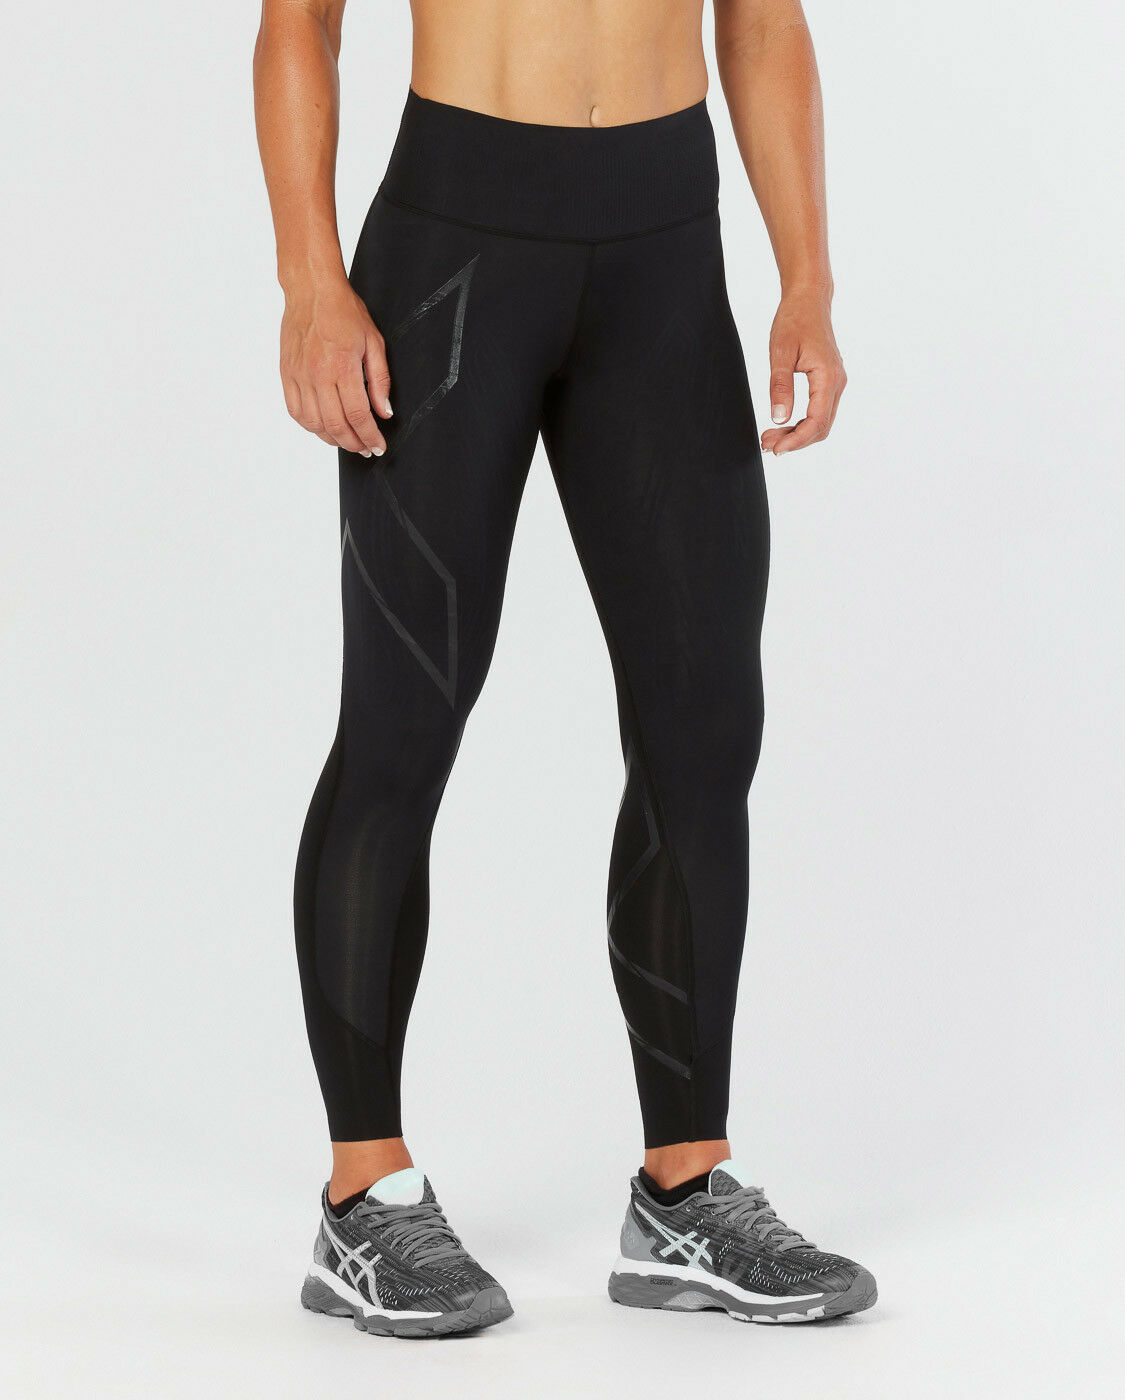 nouveau 2XU femmes MCS Bonded Mid-Rise Compression Tights High Waist ALL TailleS